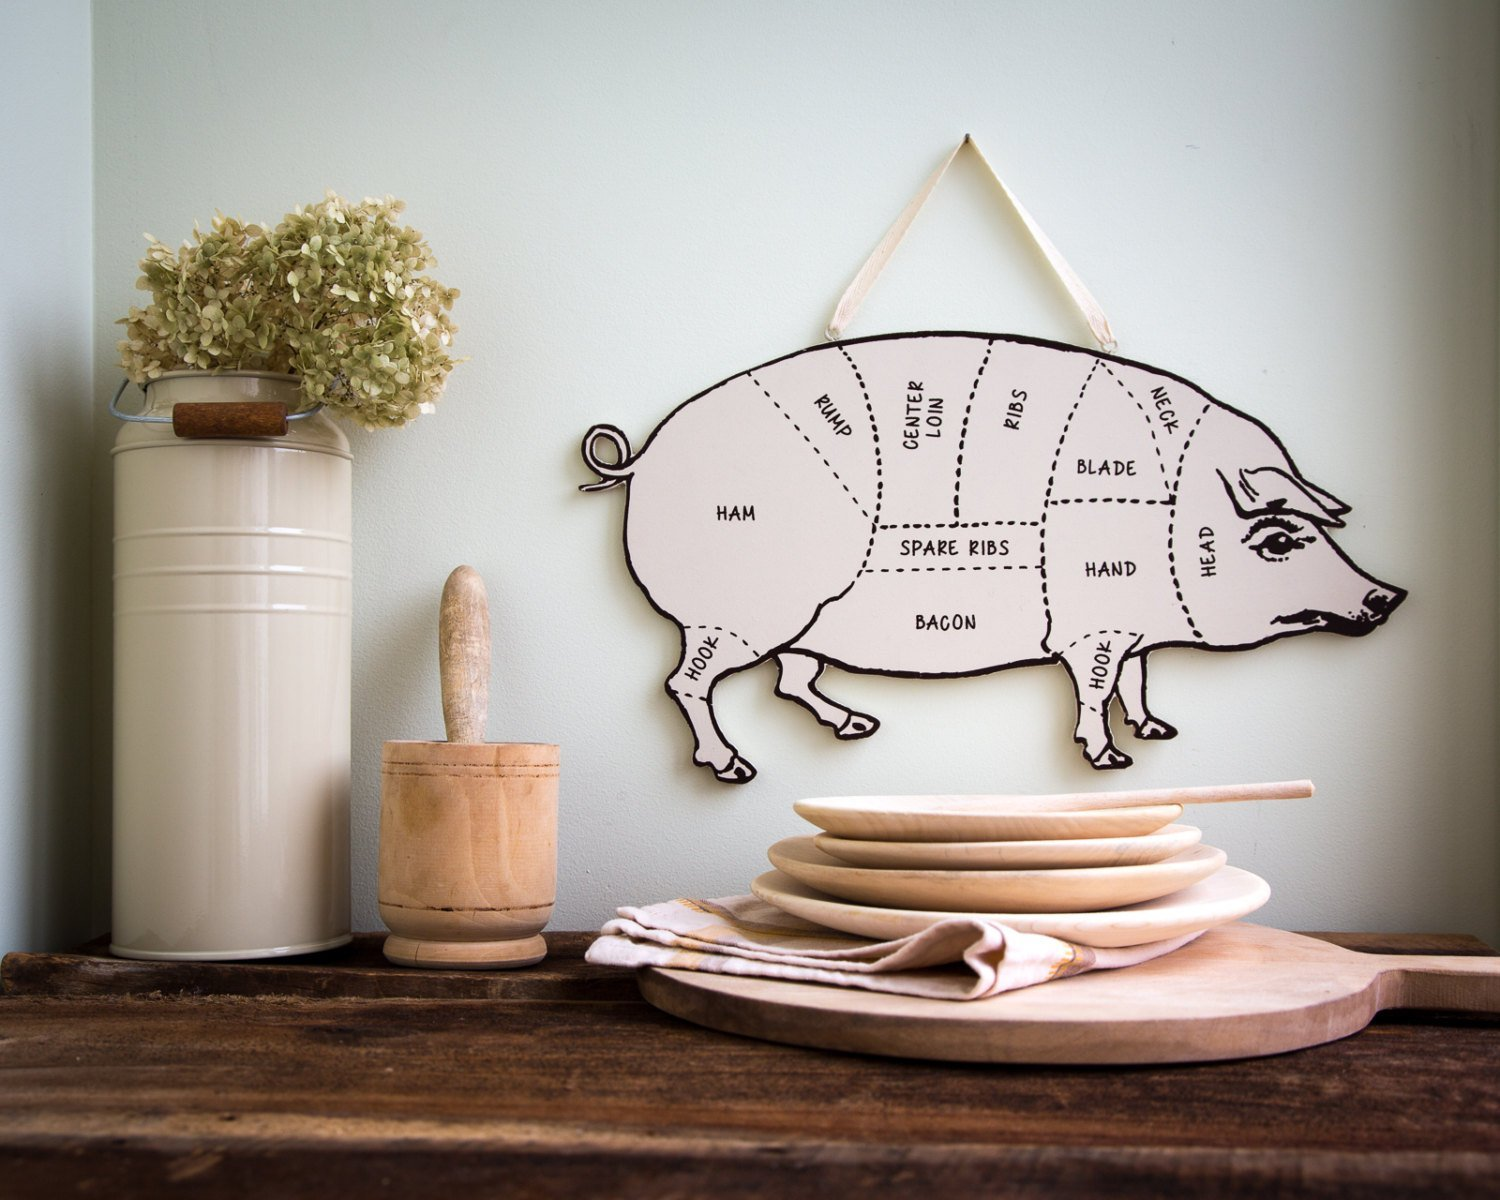 Decorative PIG  for your kitchen Meat cutting chart useful wall decoration // FREE SHIPPING - Design Atelier Article